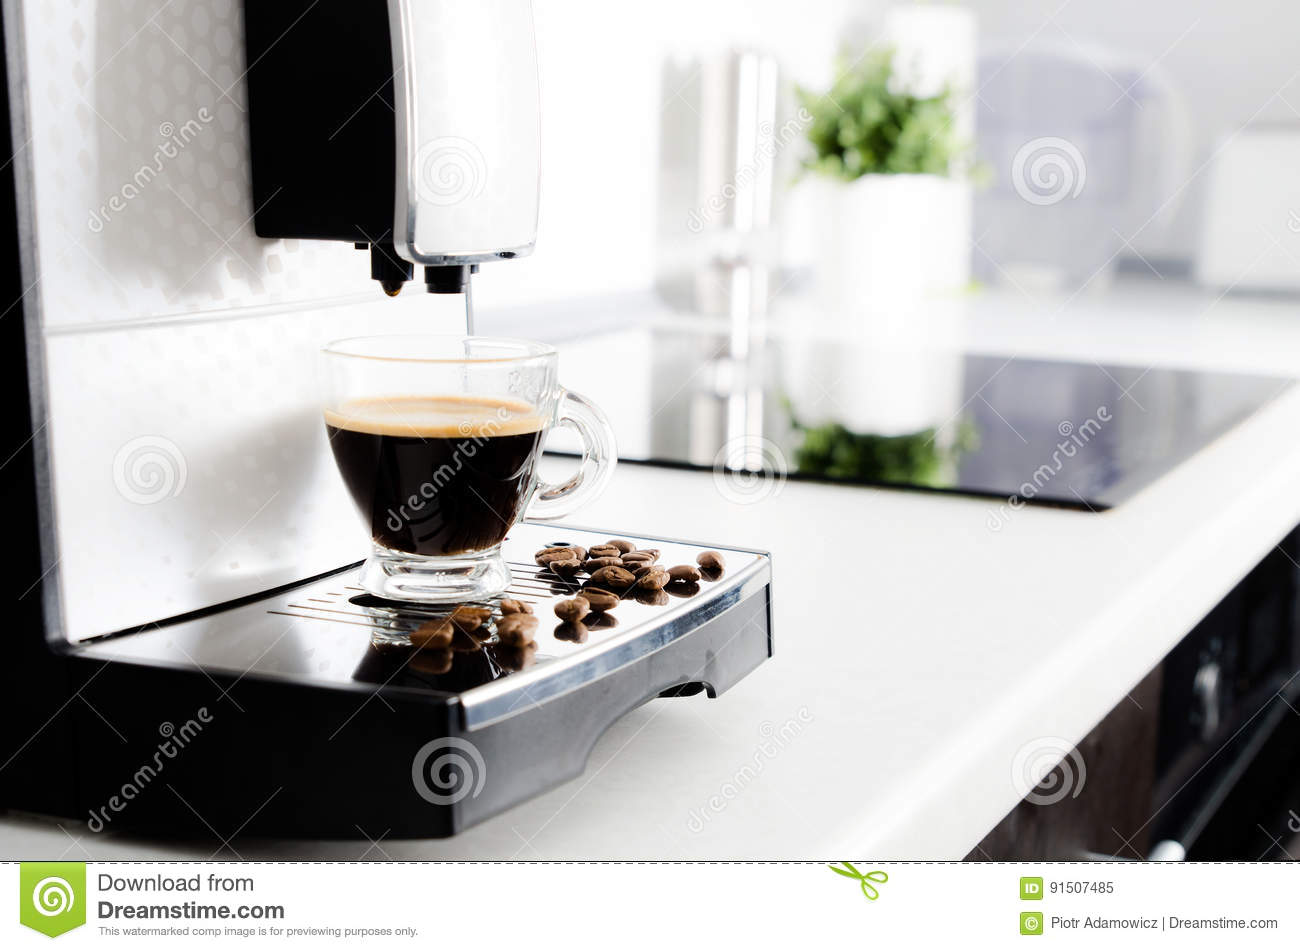 Professional Home Coffee Maker In Modern Kitchen Stock Image - Image ...